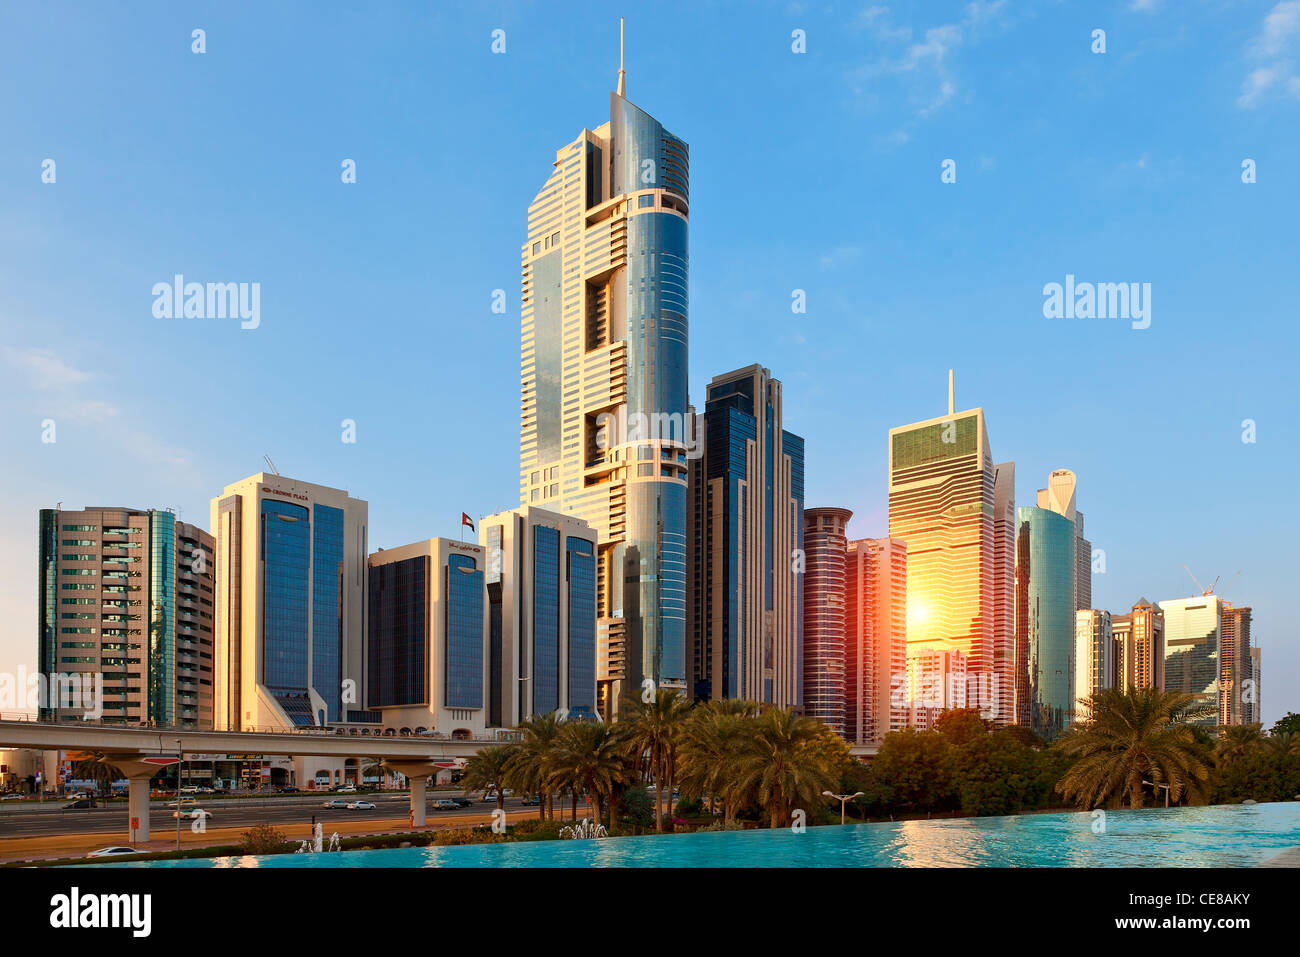 Gratte-ciel de Dubaï, le long de la route Sheikh Zayed Photo Stock